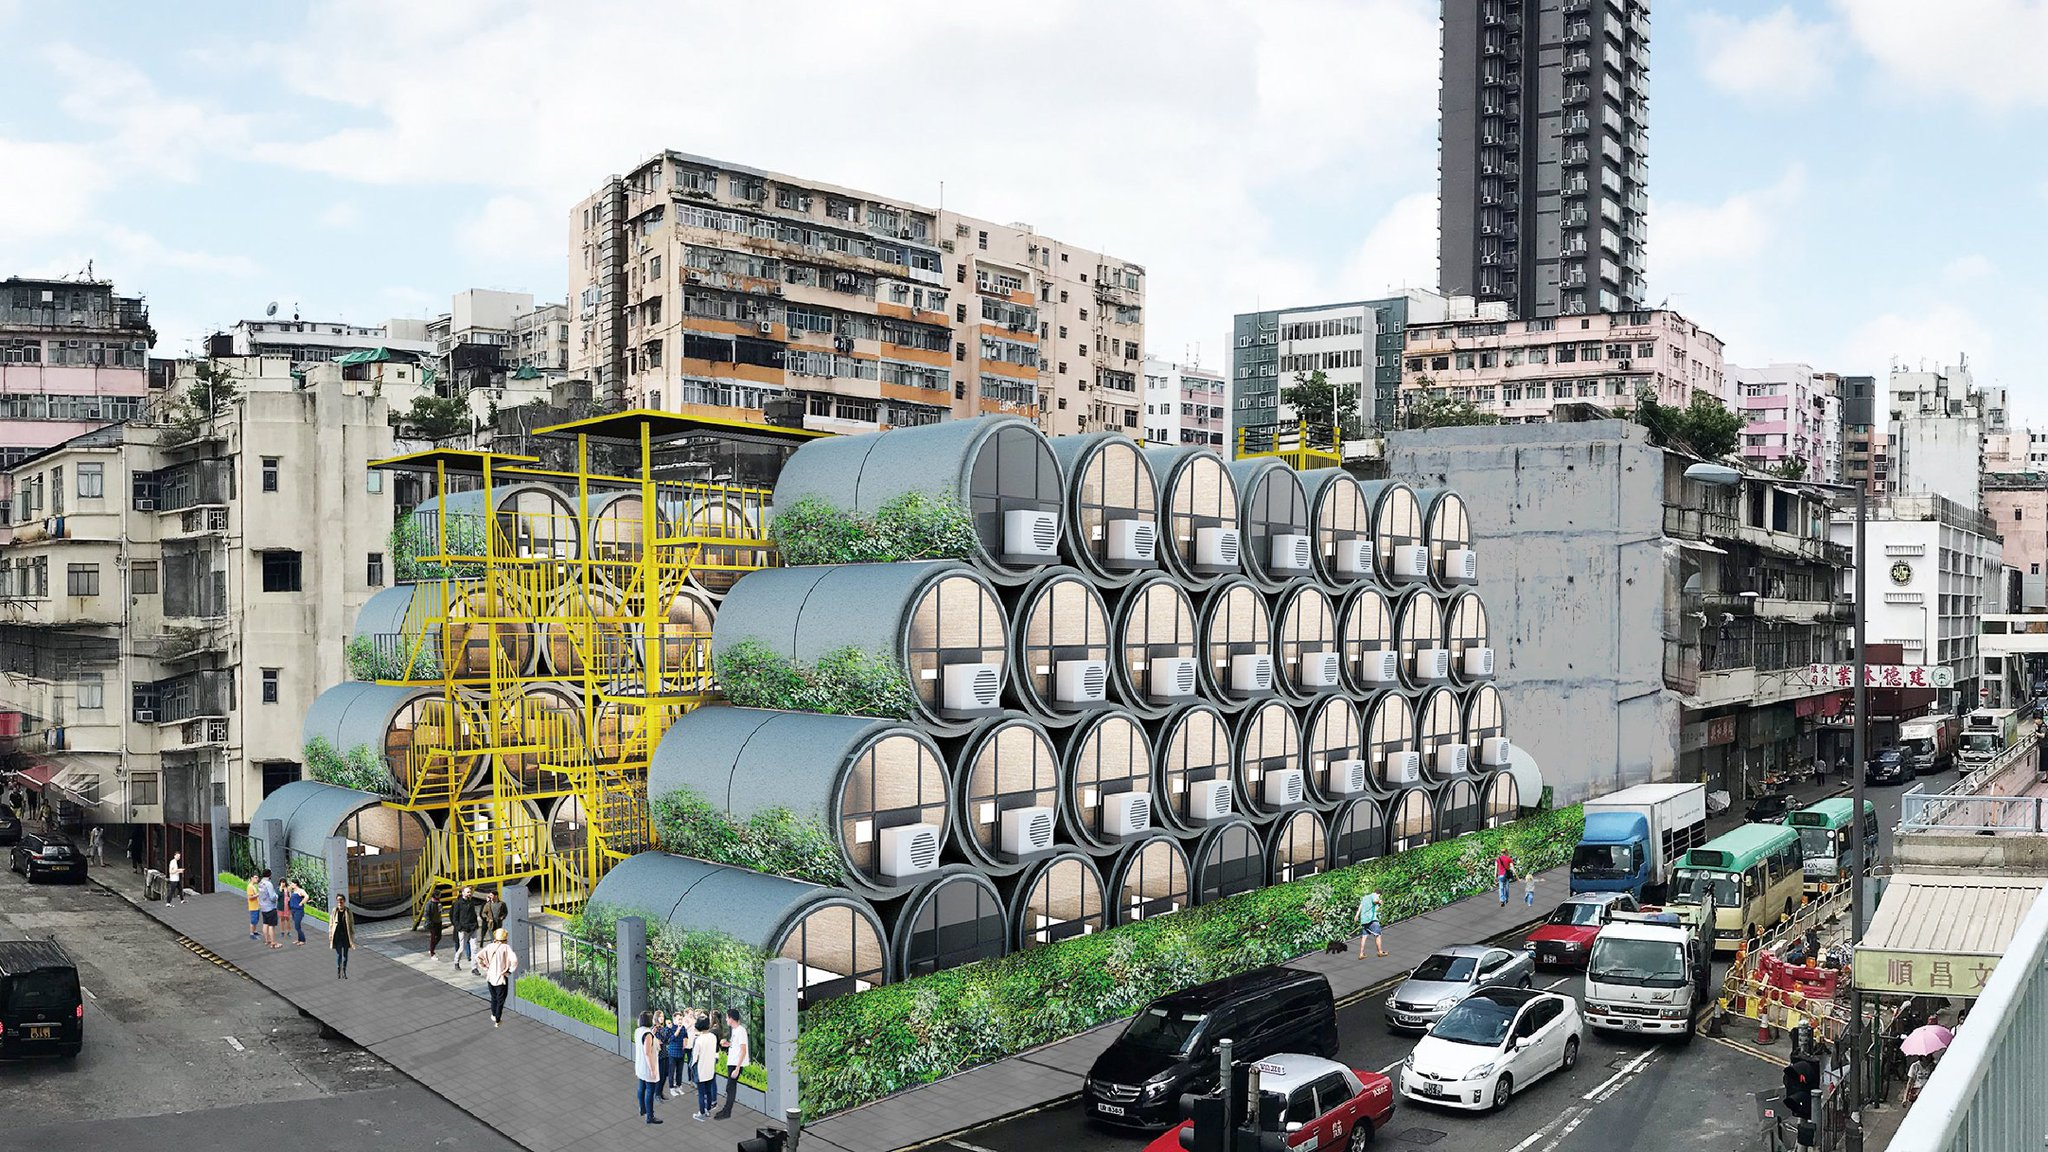 These micro apartments in concrete pipes are designed to ease Hong Kong's housing crisis https://t.co/GsozhuKtyK https://t.co/wC1VSaSAhq